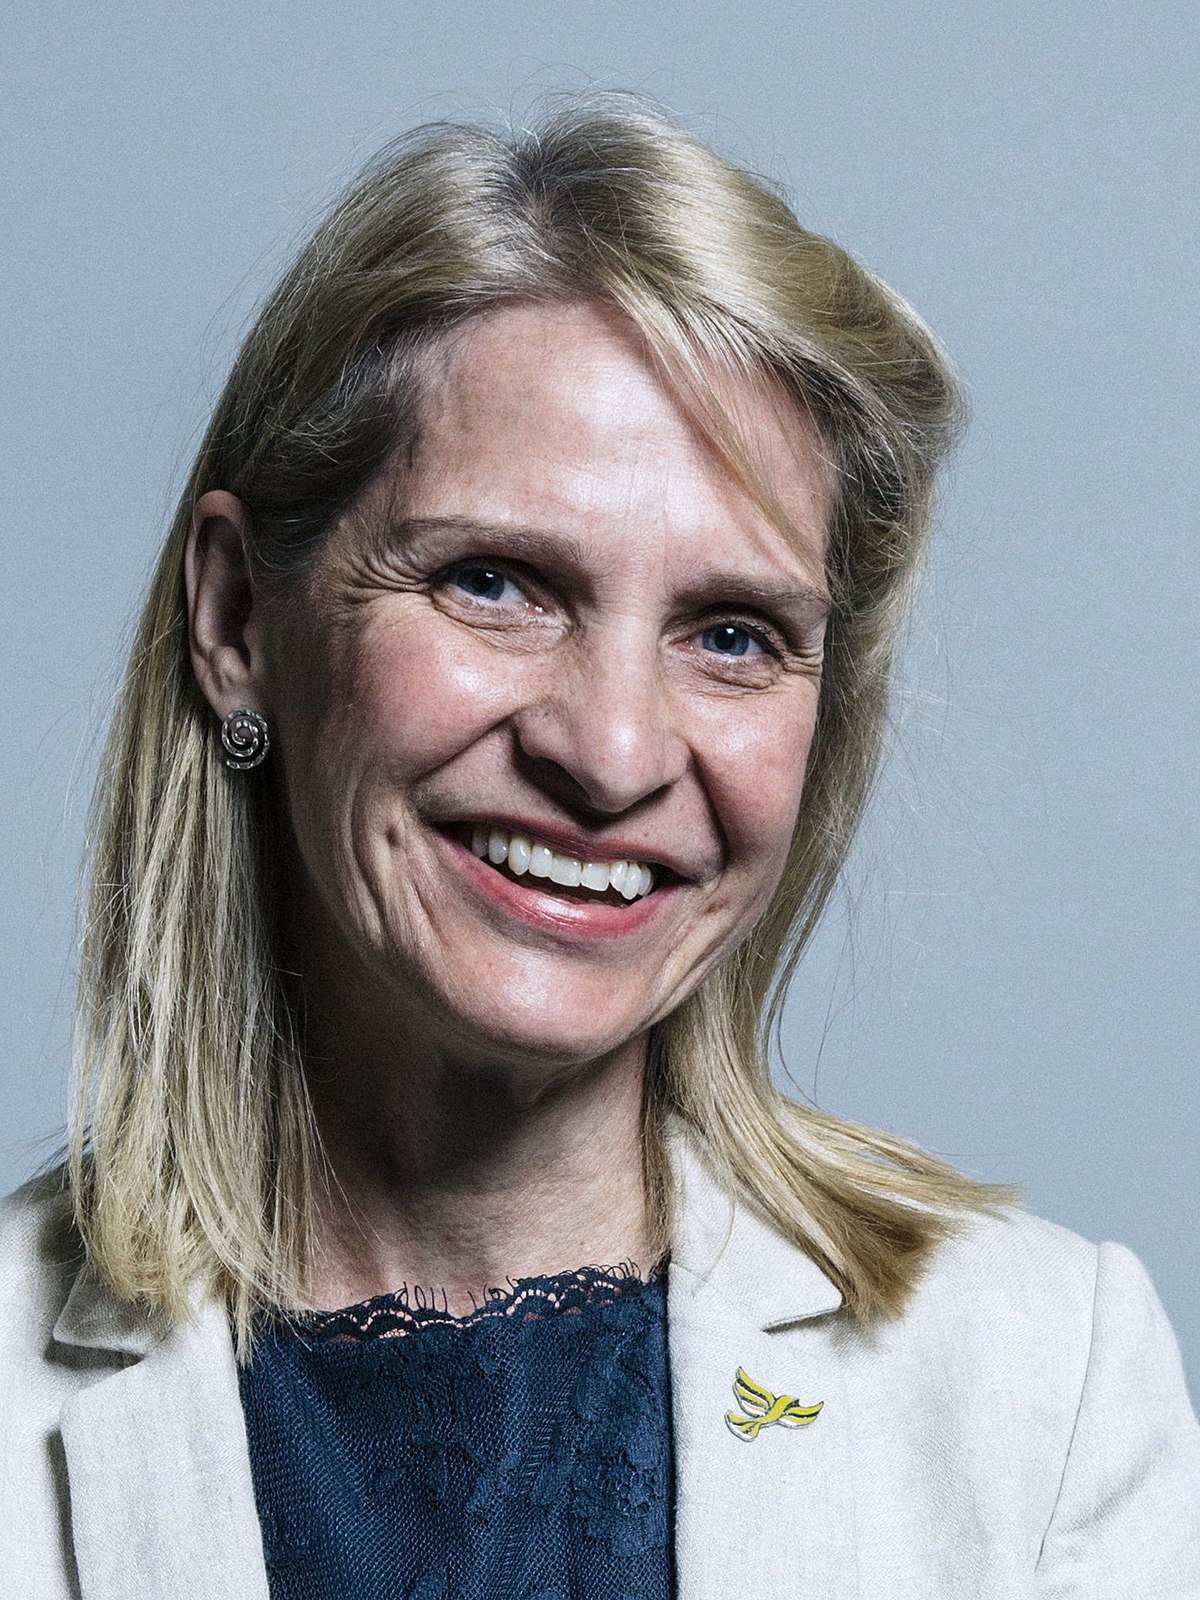 Wera Hobhouse Wikipedia